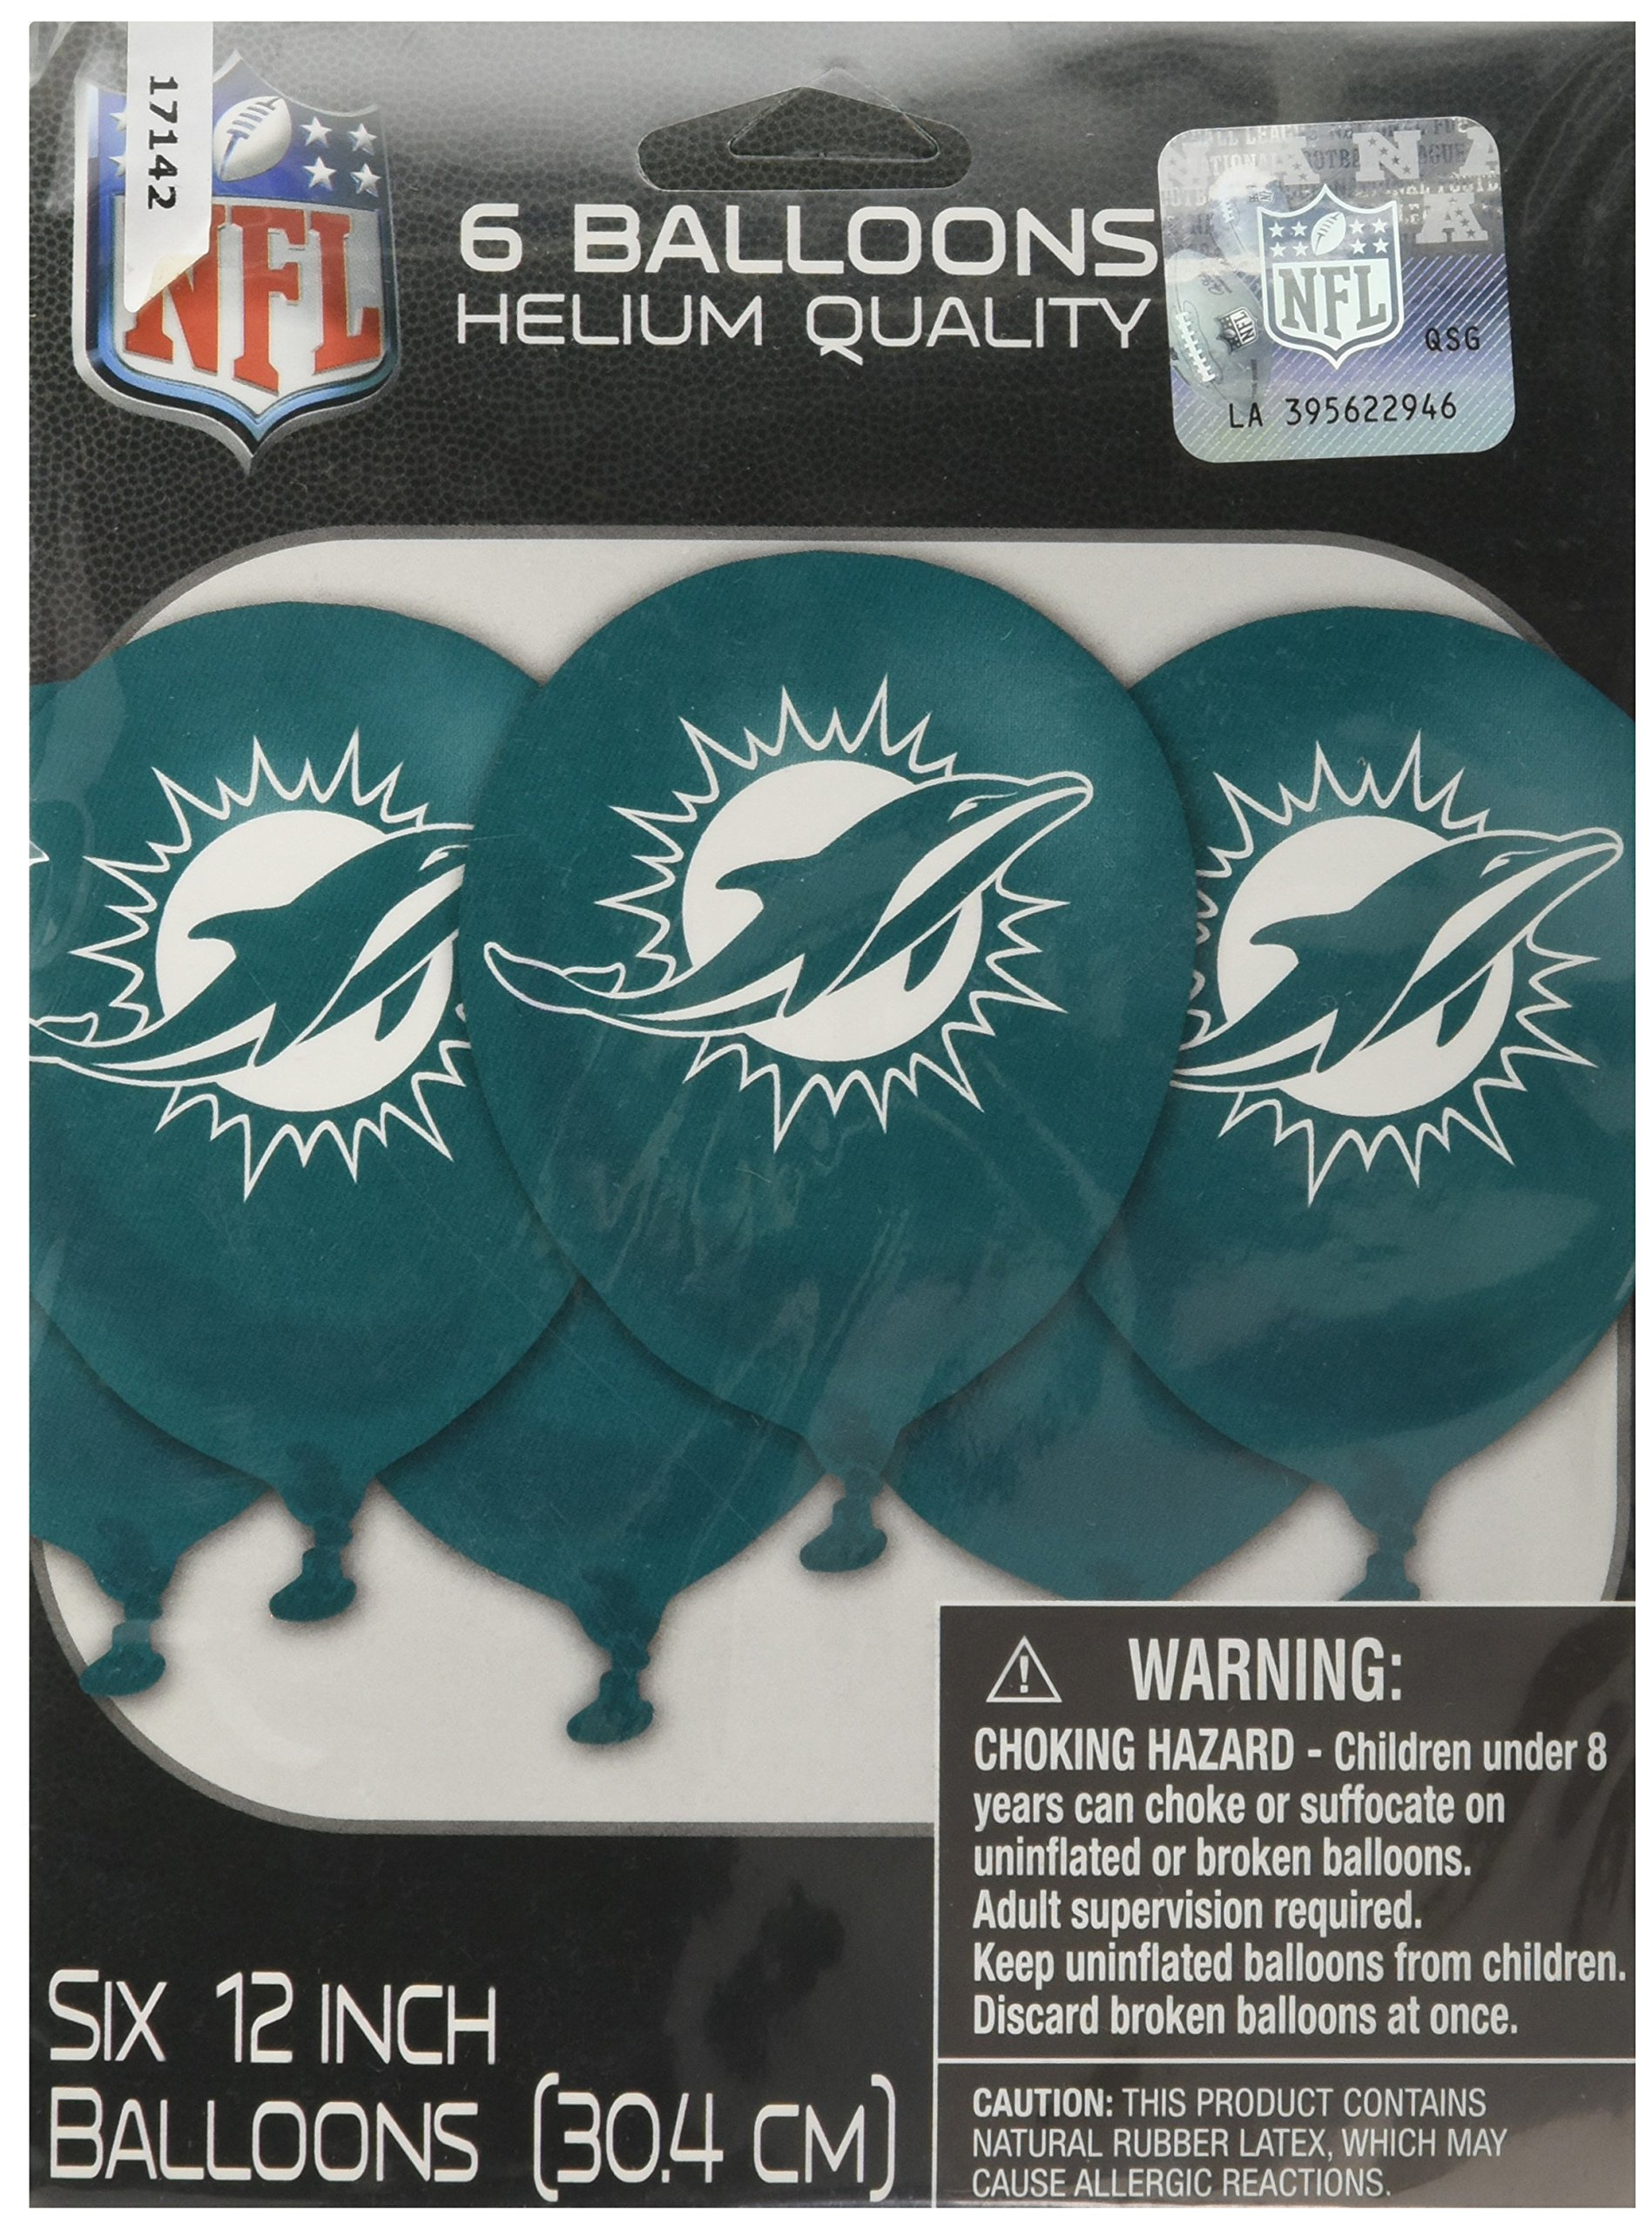 Amscan Printed Balloons NFL Football Sports Childrens Party , Miami Dolphins, 72 Pieces